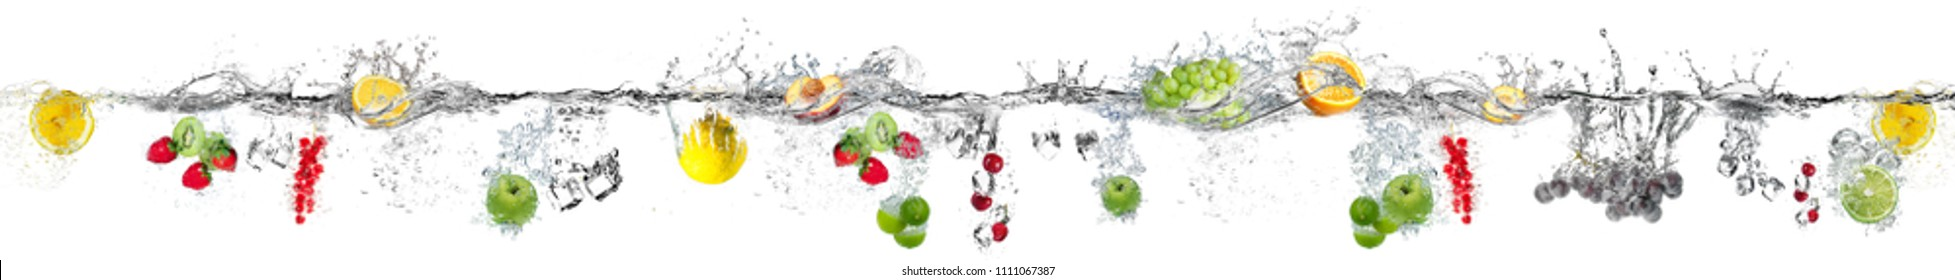 A set of fruits falling in the water on a brown background panorama.